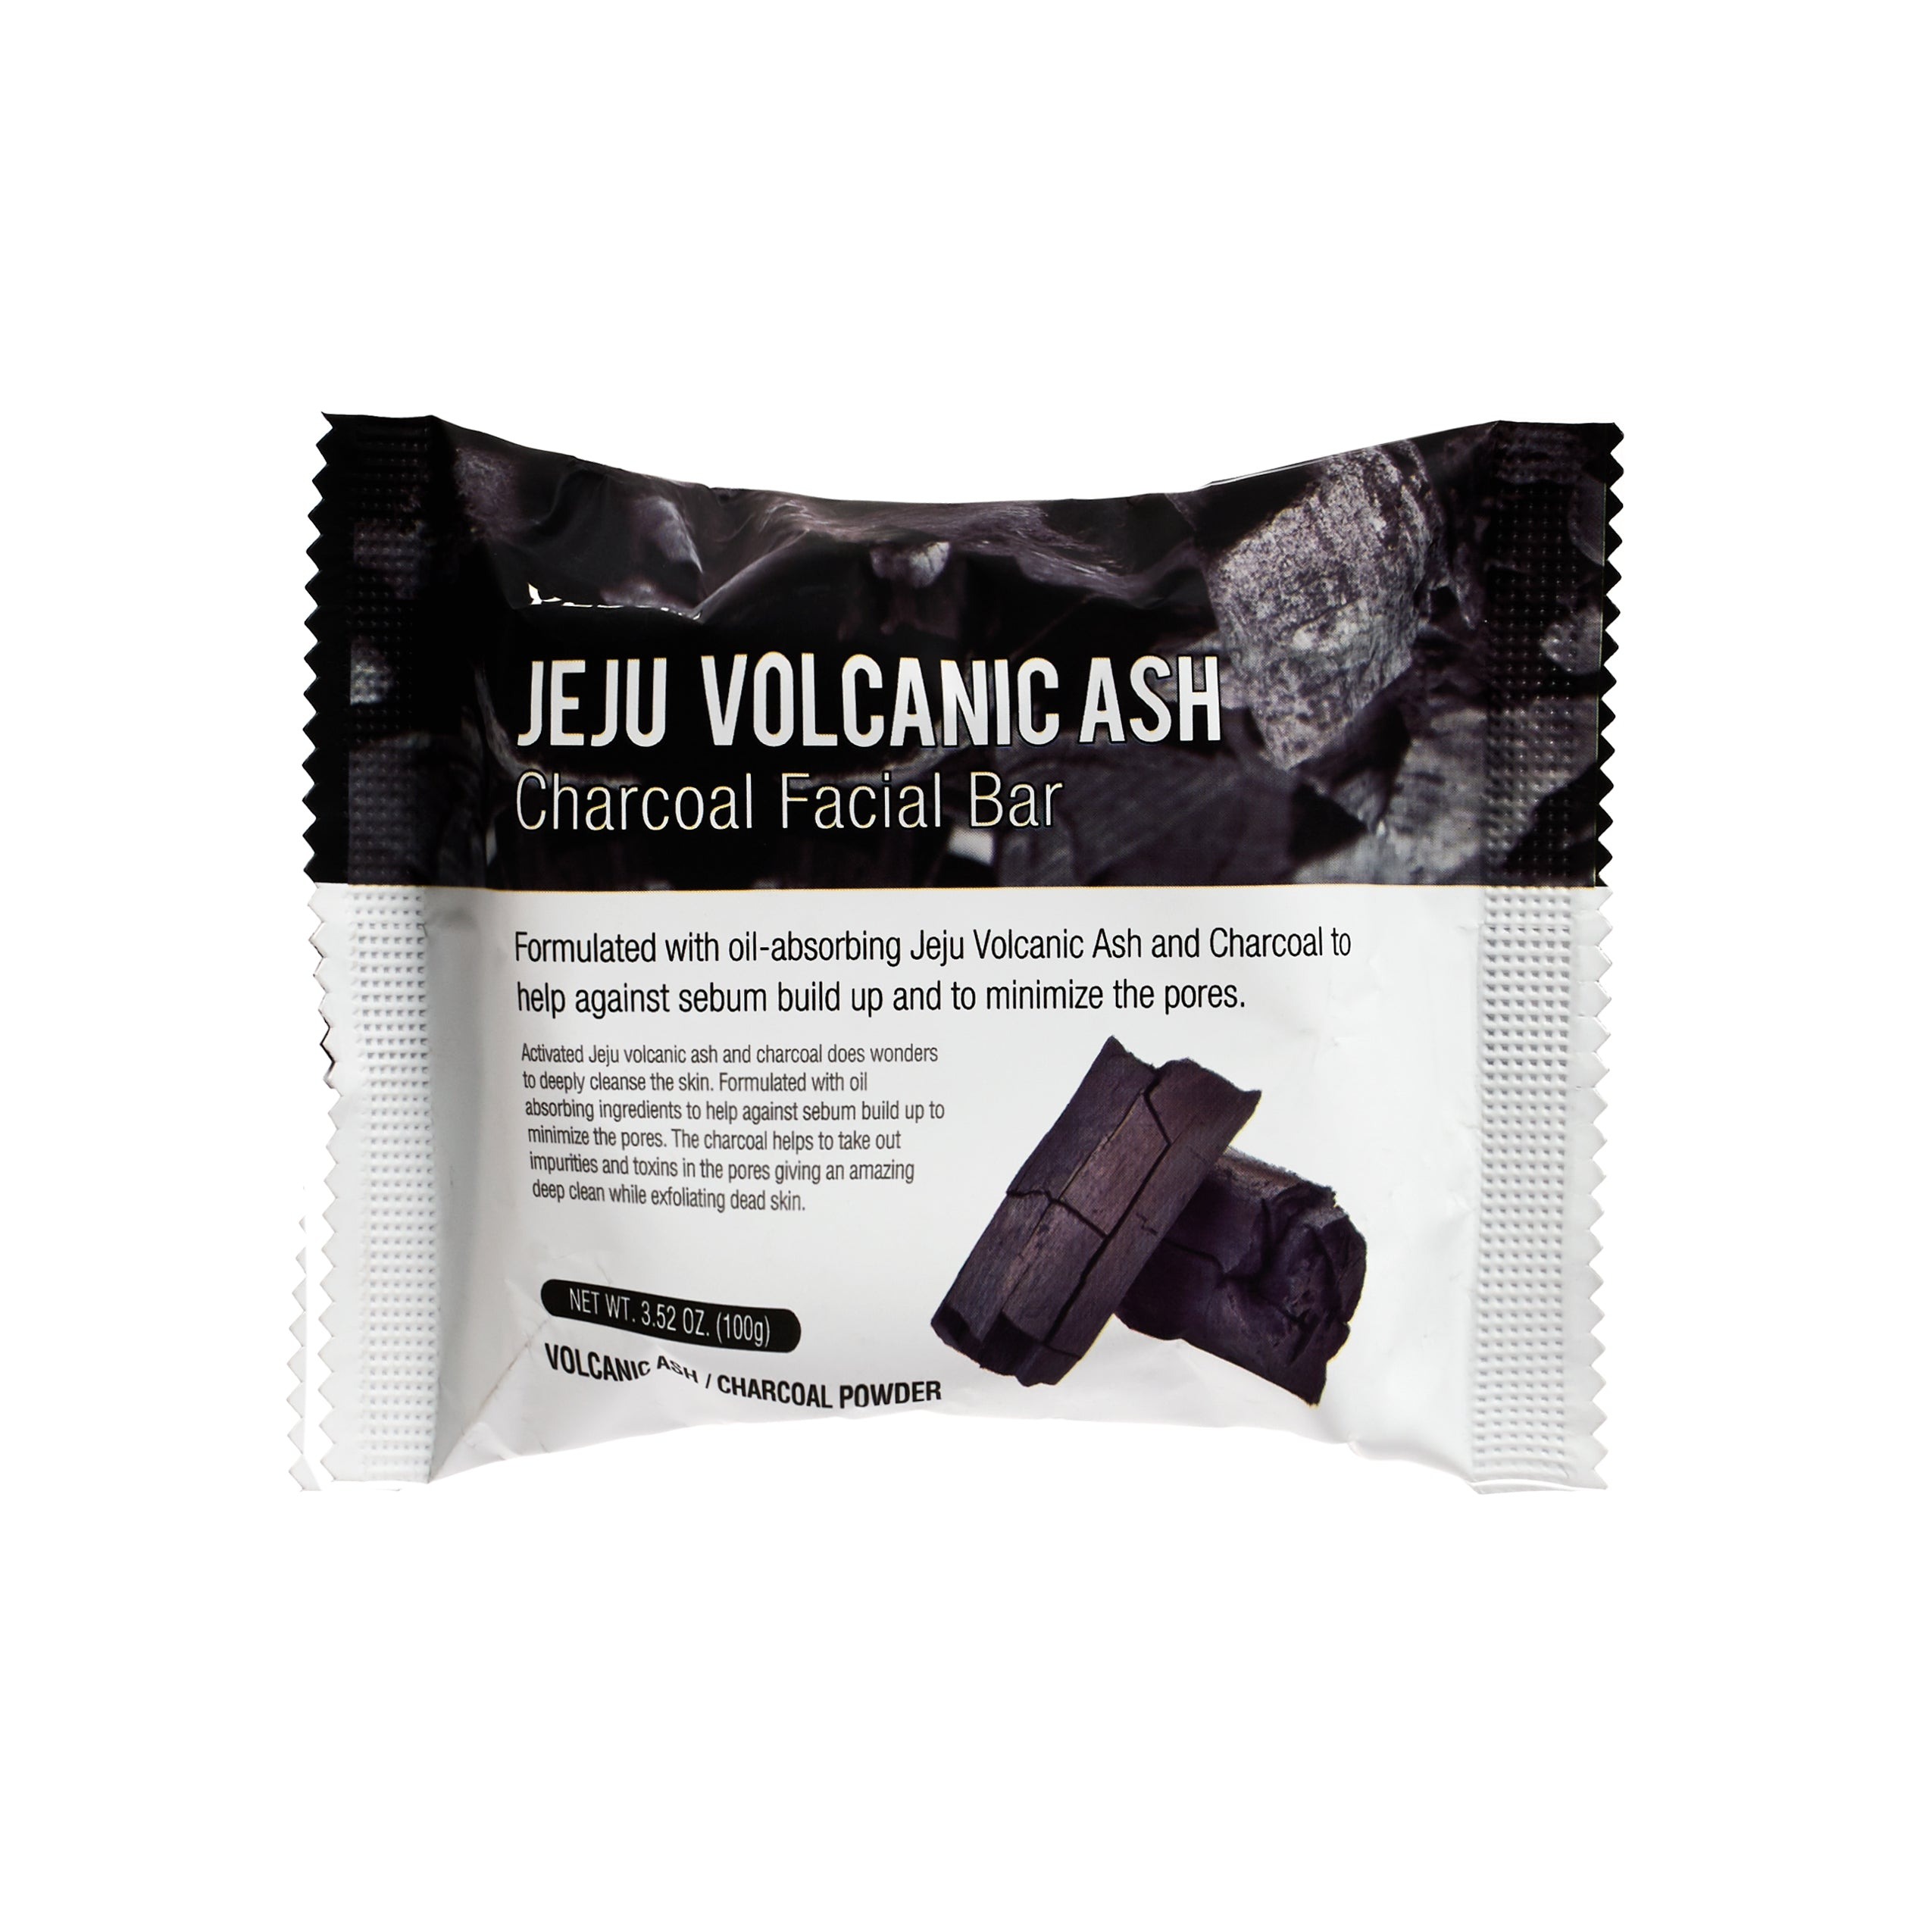 YESUL Jeju Volcanic Ash Charcoal Facial Bar